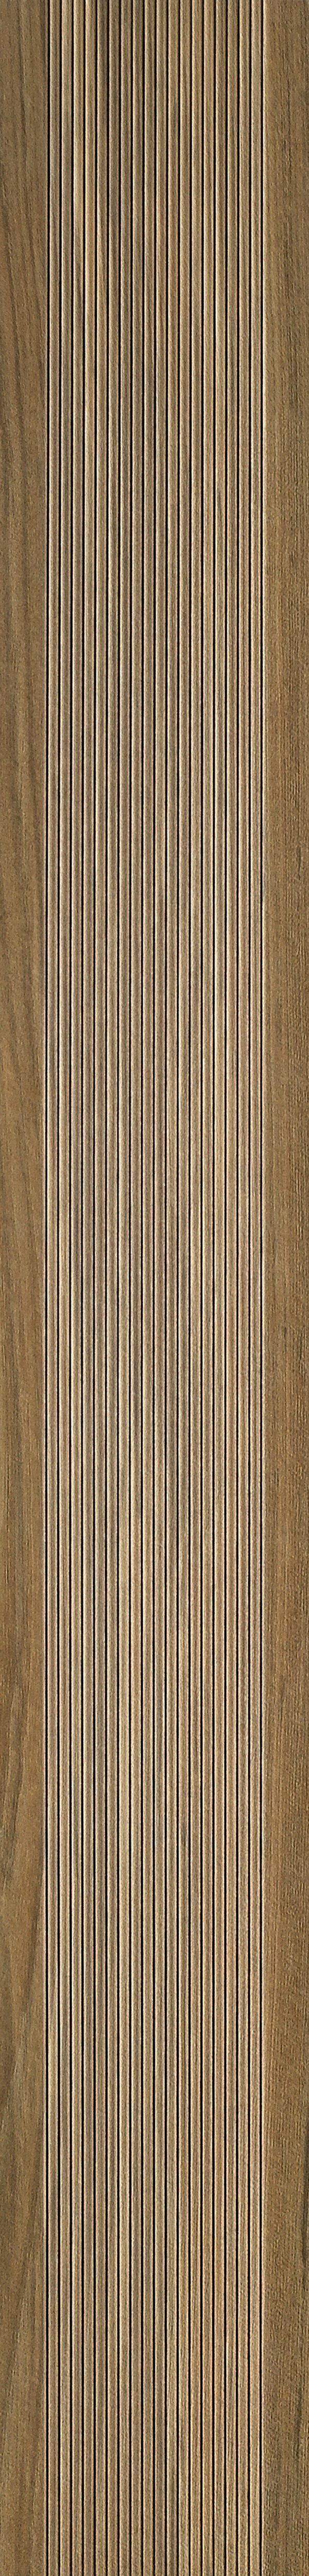 and flooring suburban cedar ed decks boston floor for knotty inland new your porches blog which deck